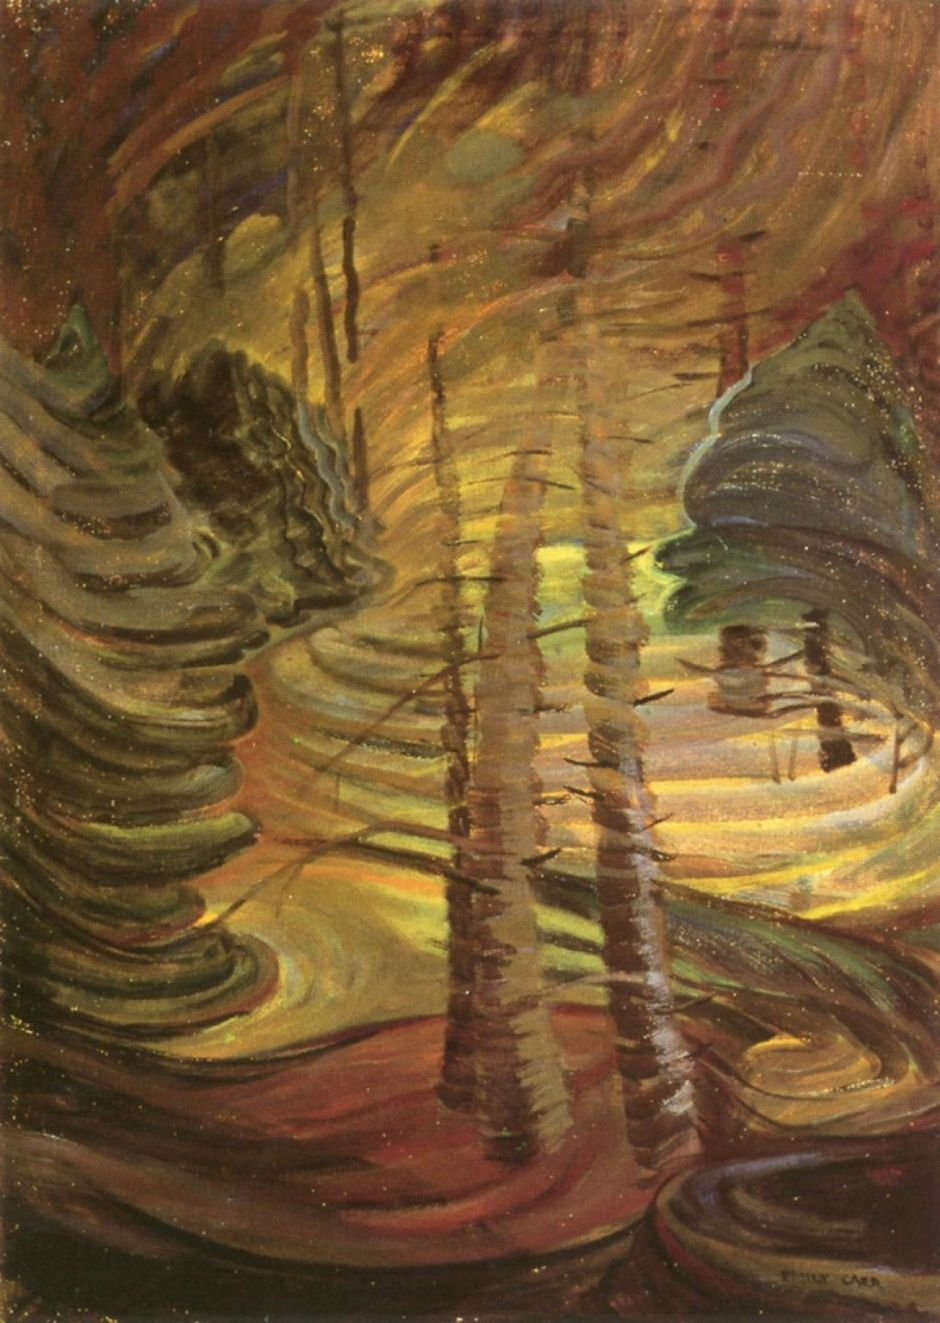 carrdancingsunlight1938